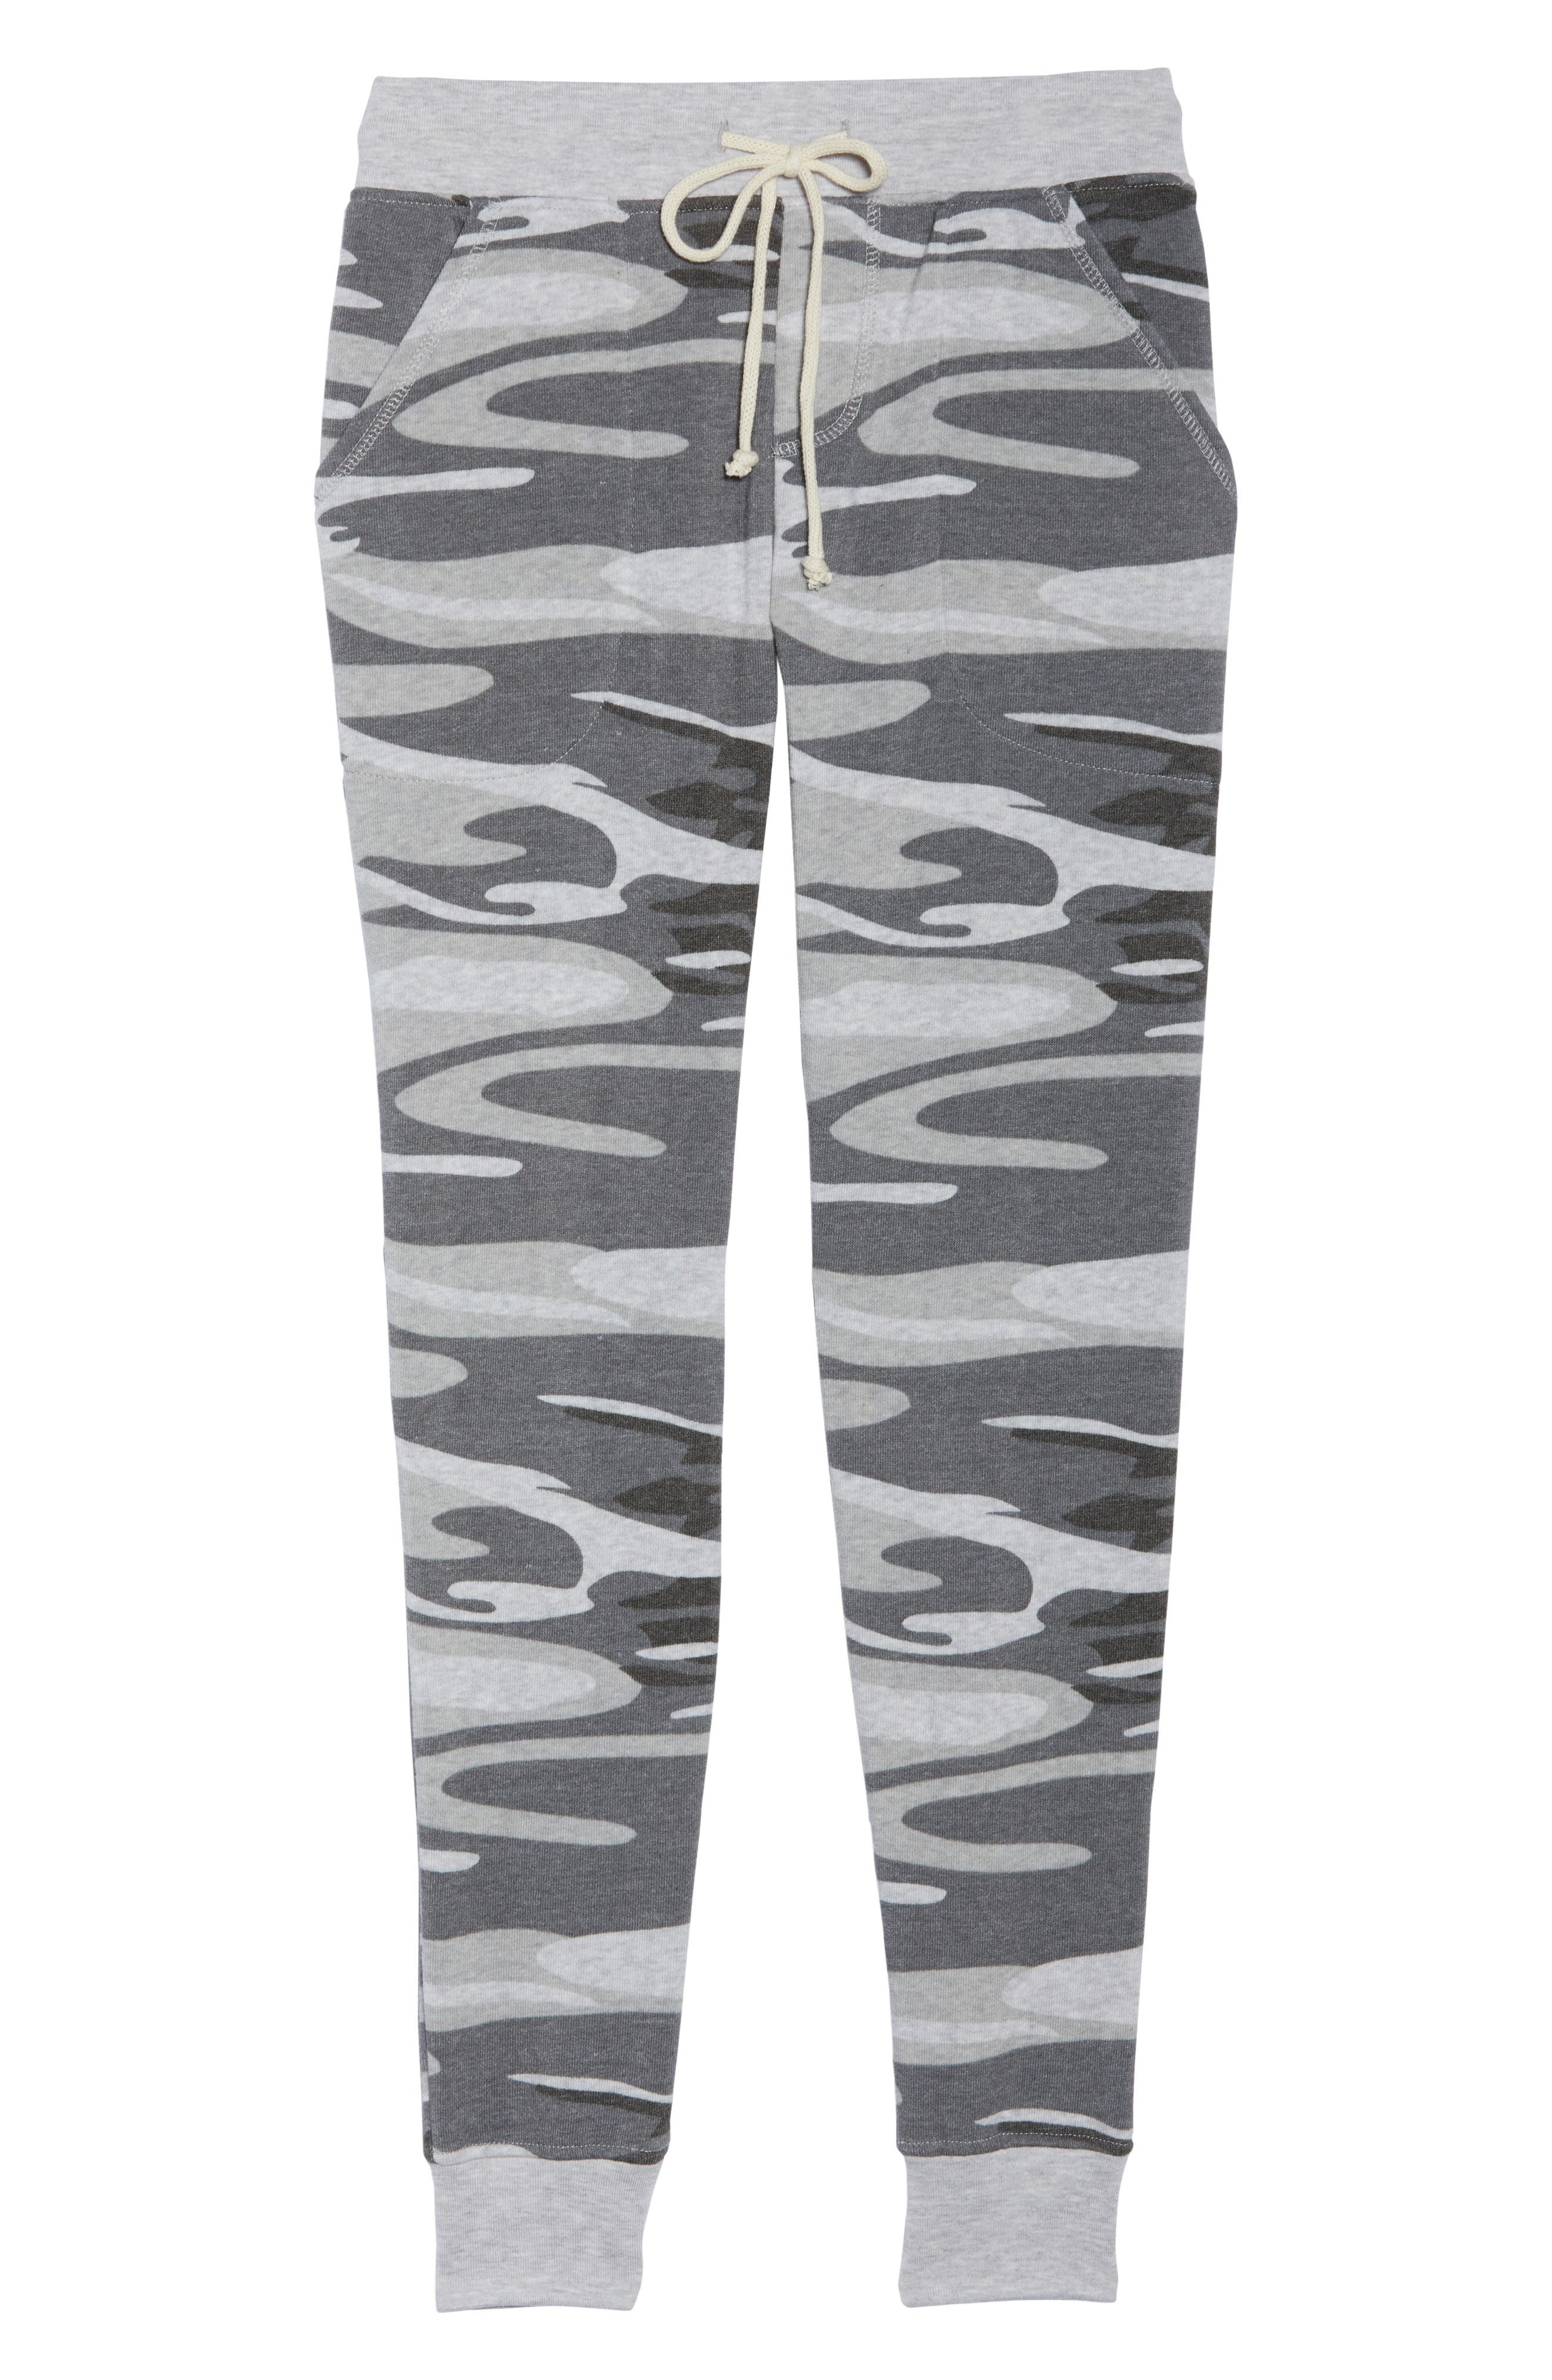 Camo Print Fleece Jogger Pants,                             Alternate thumbnail 6, color,                             035